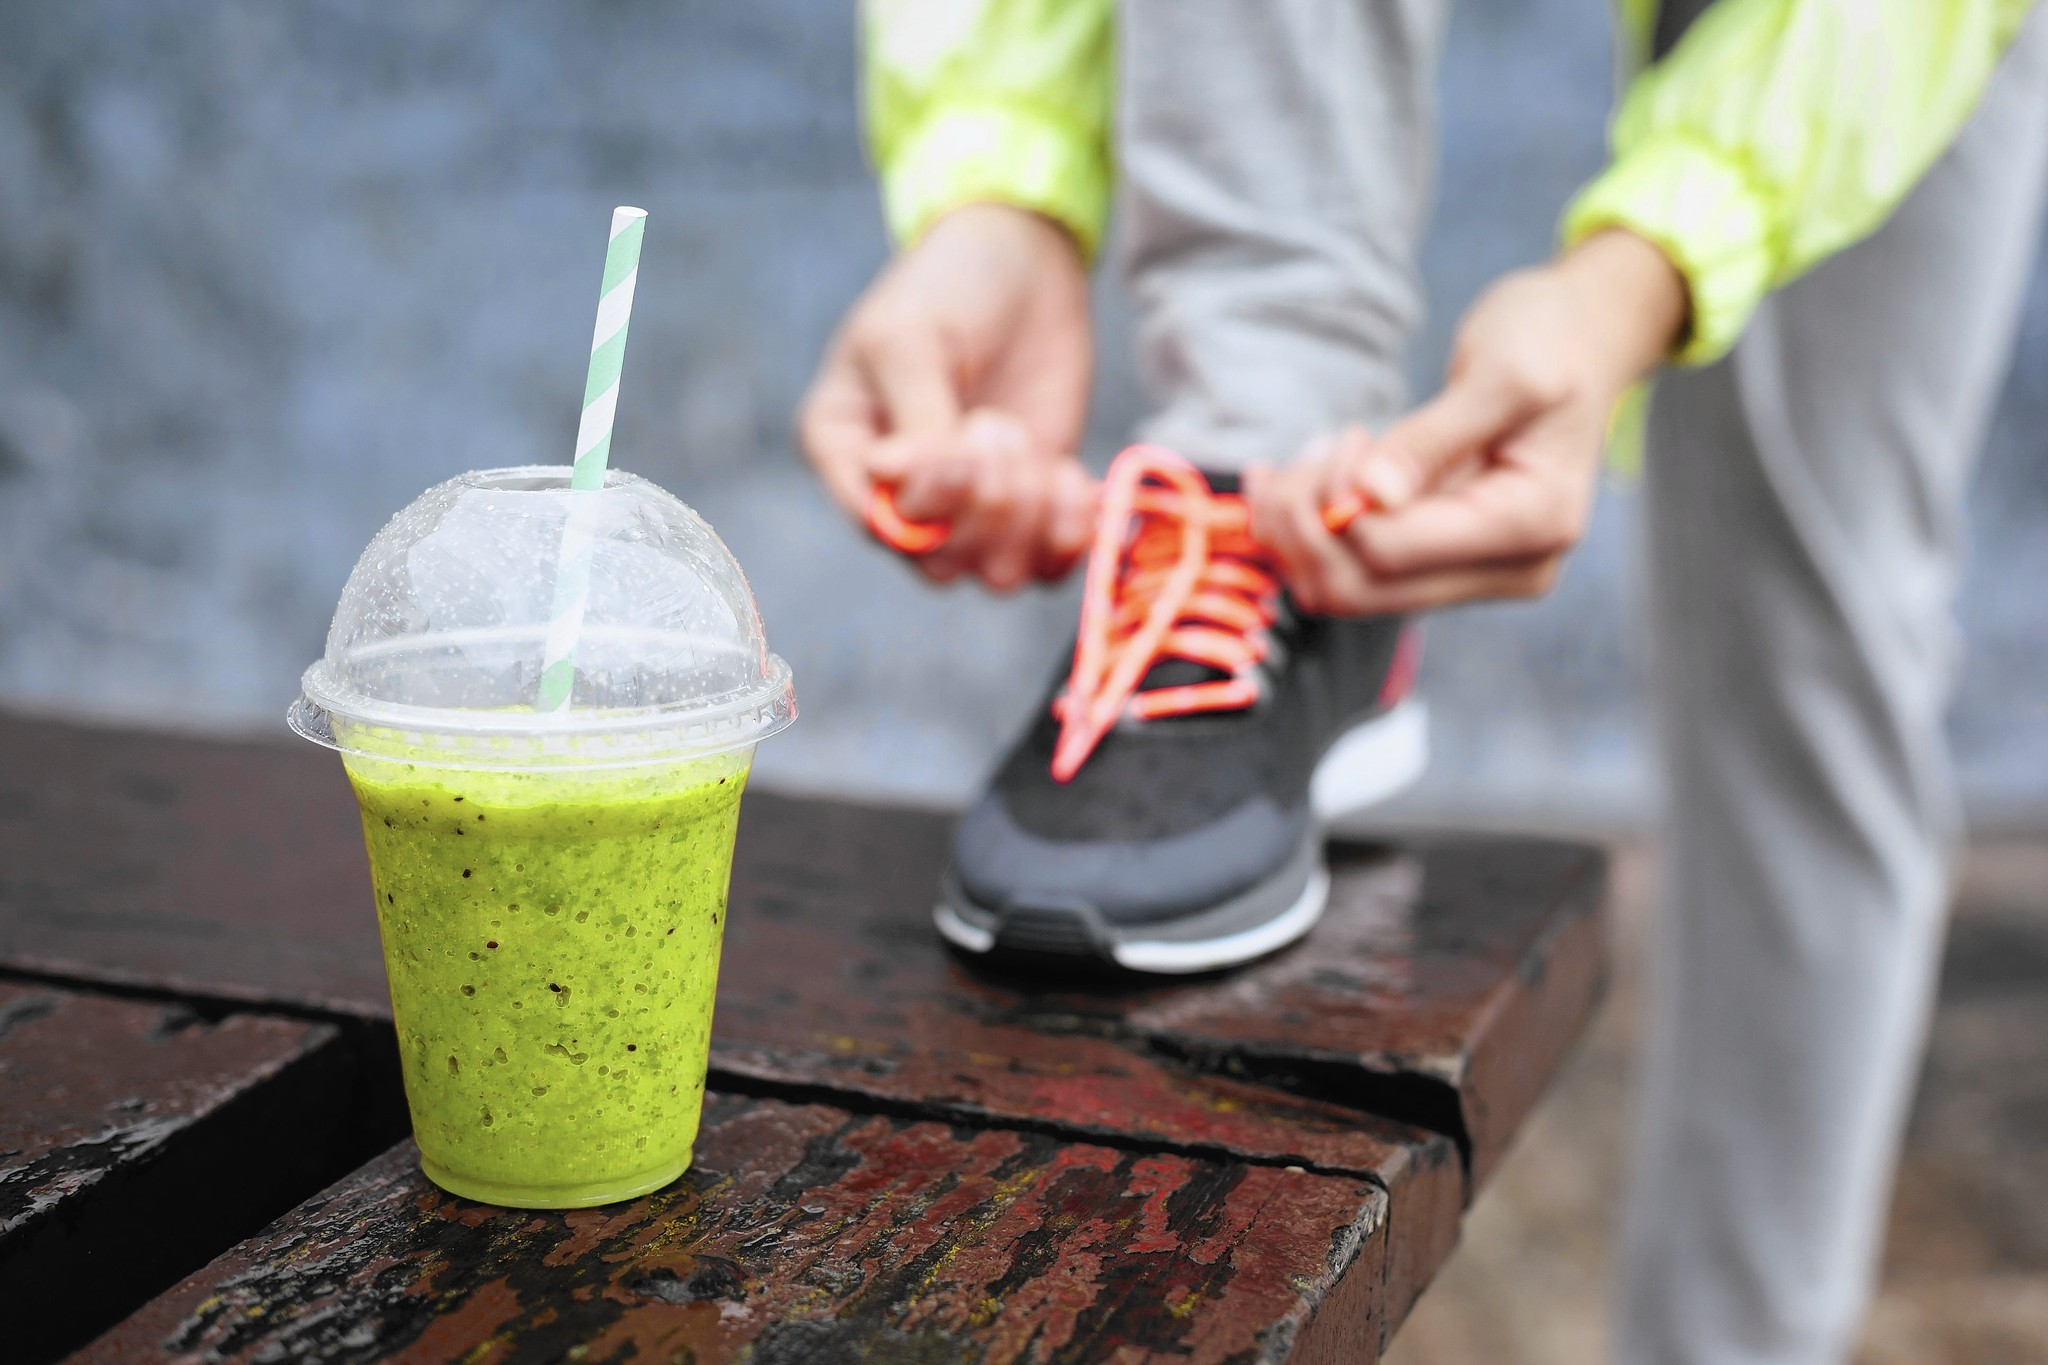 To eat or not to eat: The science behind running on empty